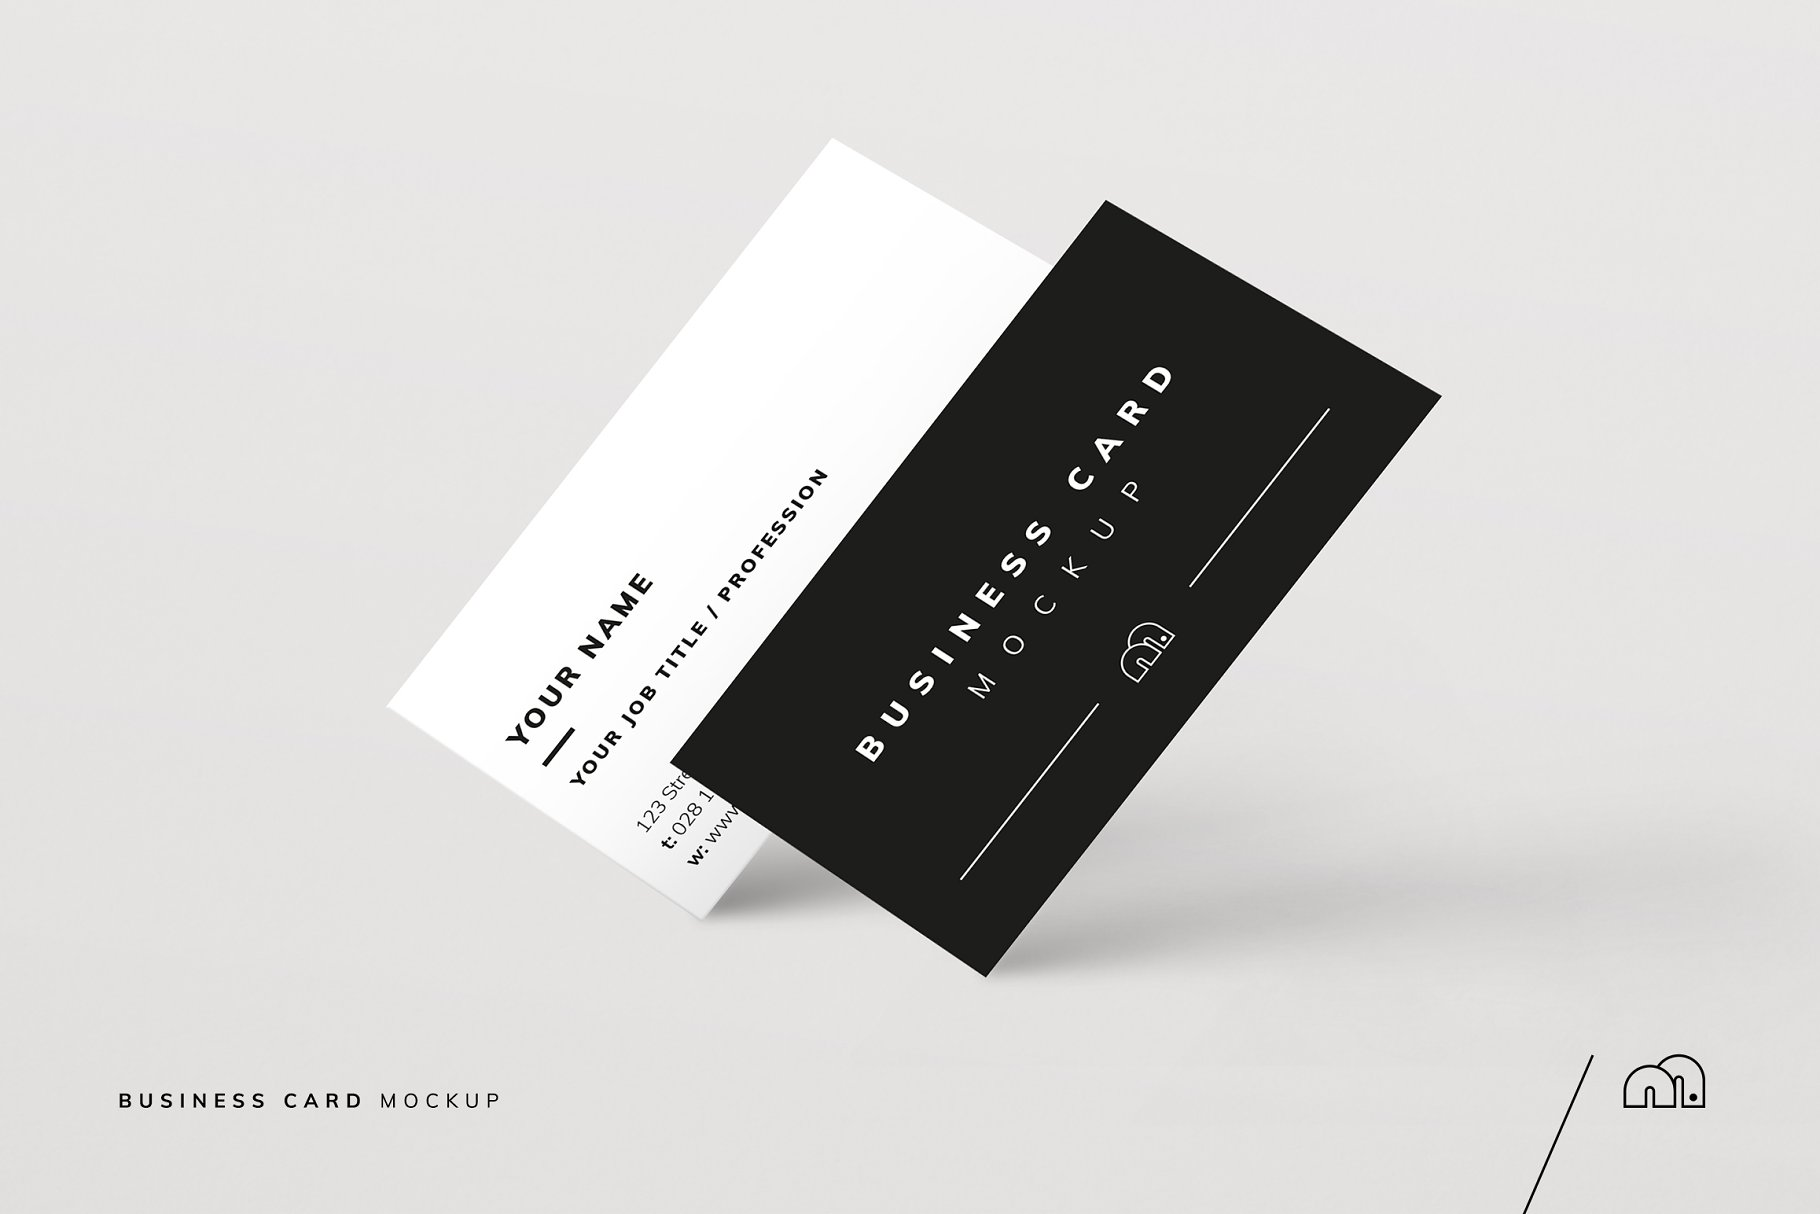 Business Card Mockup - Product Mockups | Creative Market Pro